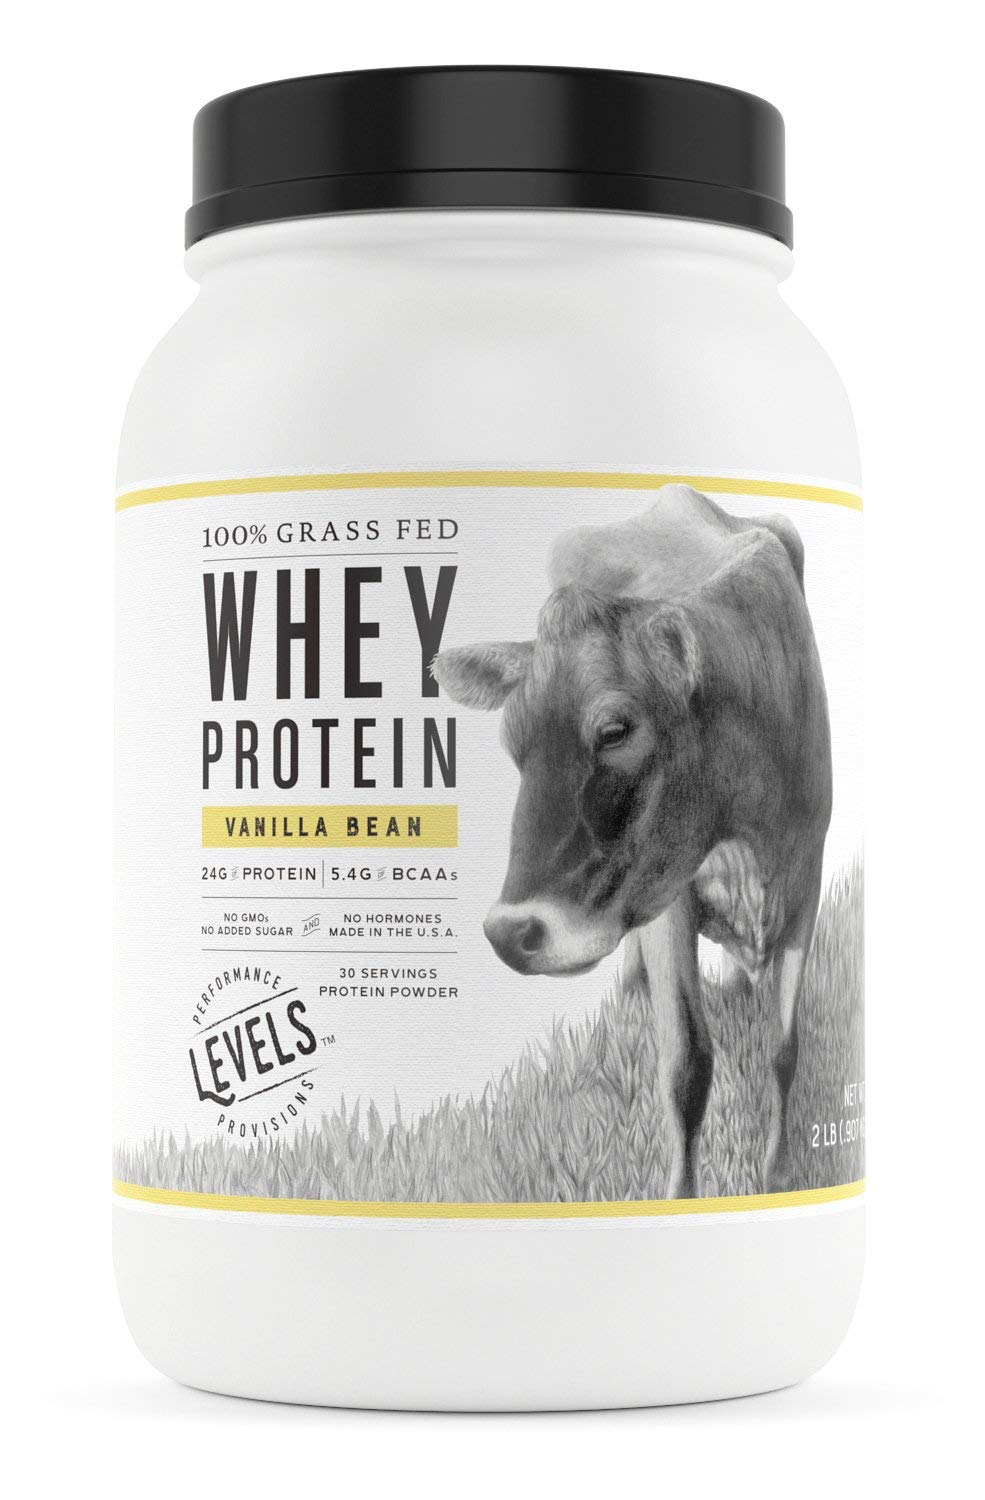 Levels 100% Grass Fed Whey Protein, No GMOs, Vanilla Bean, 2LB by Levels Nutrition